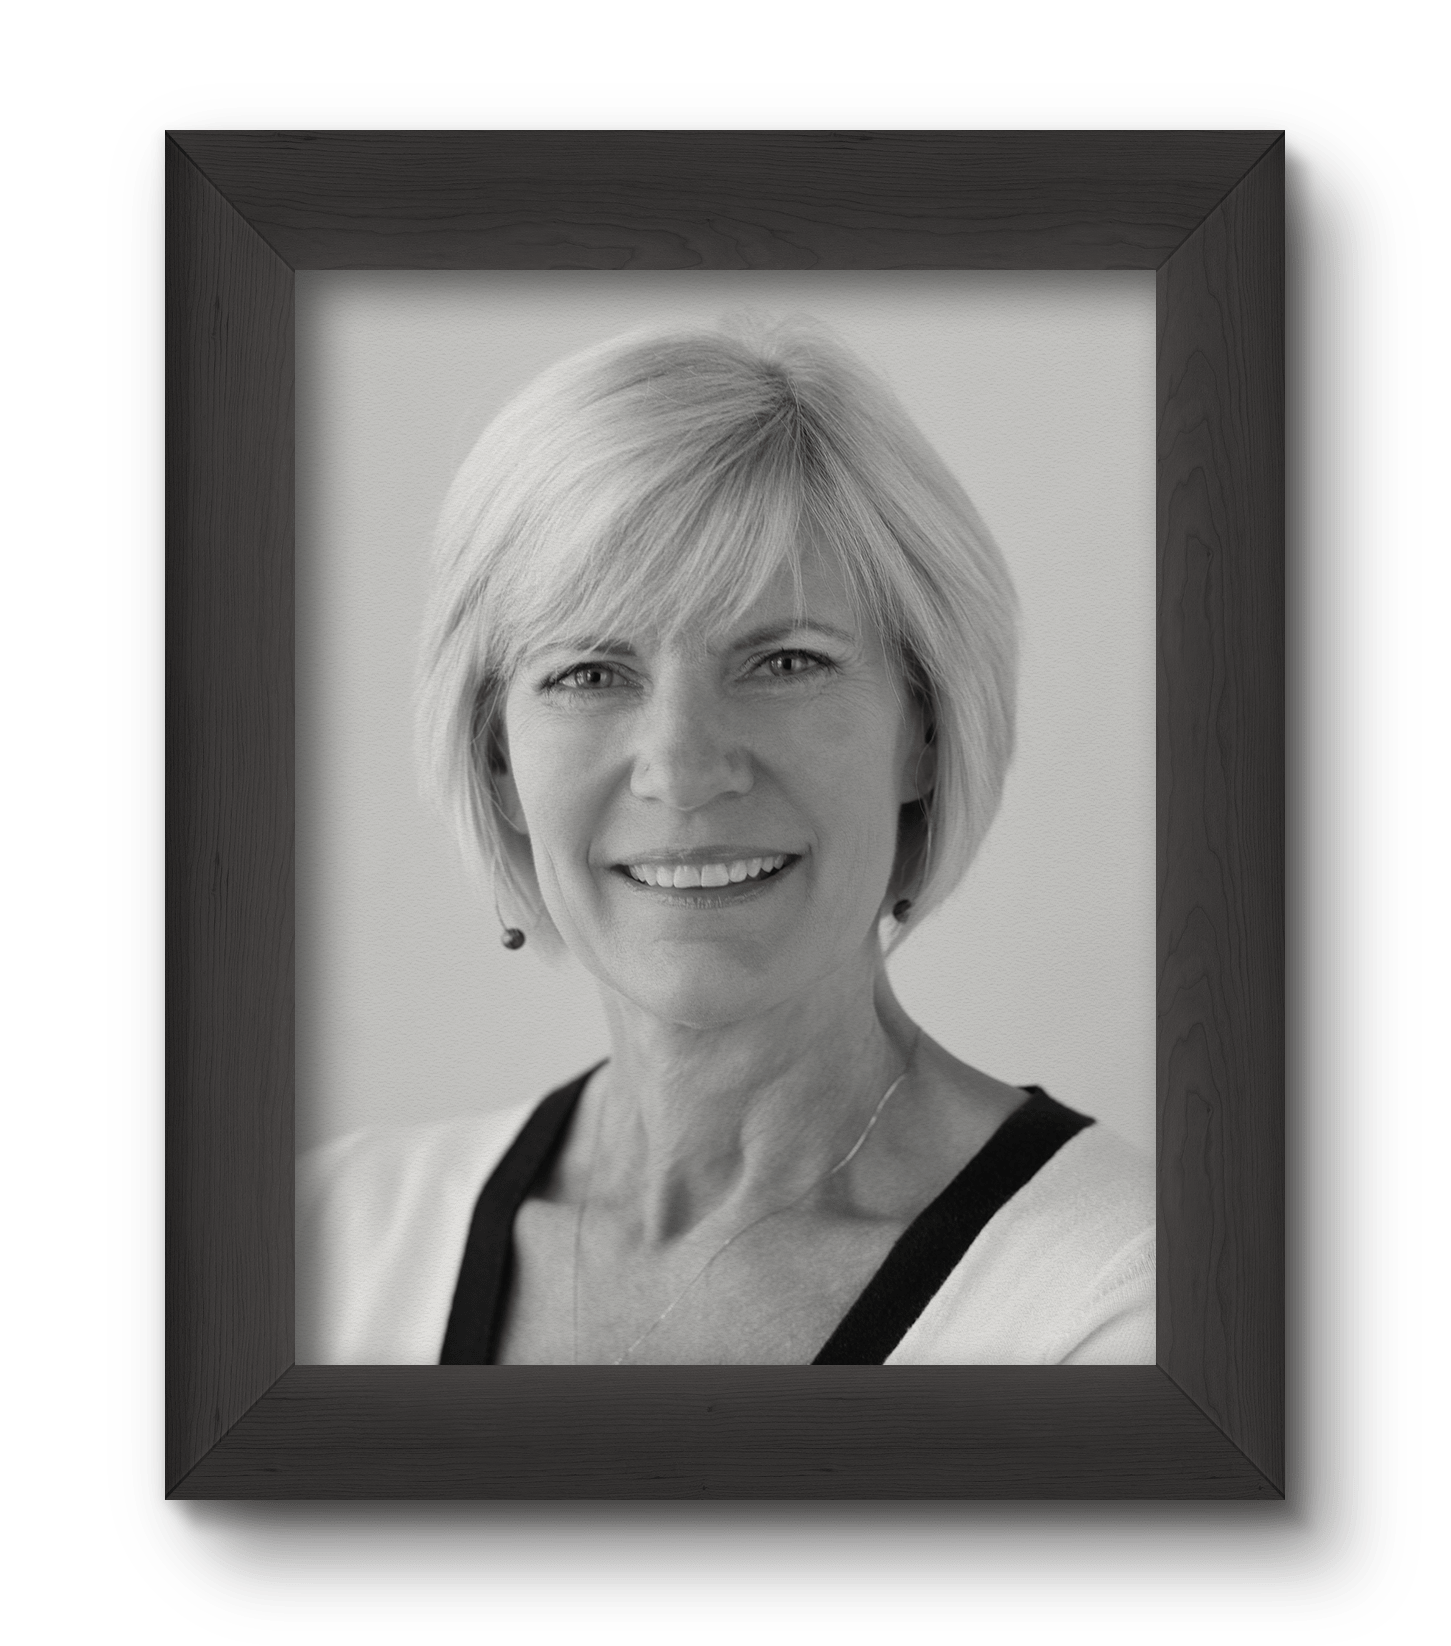 Debbie Kent photo in a black photo frame in black and white